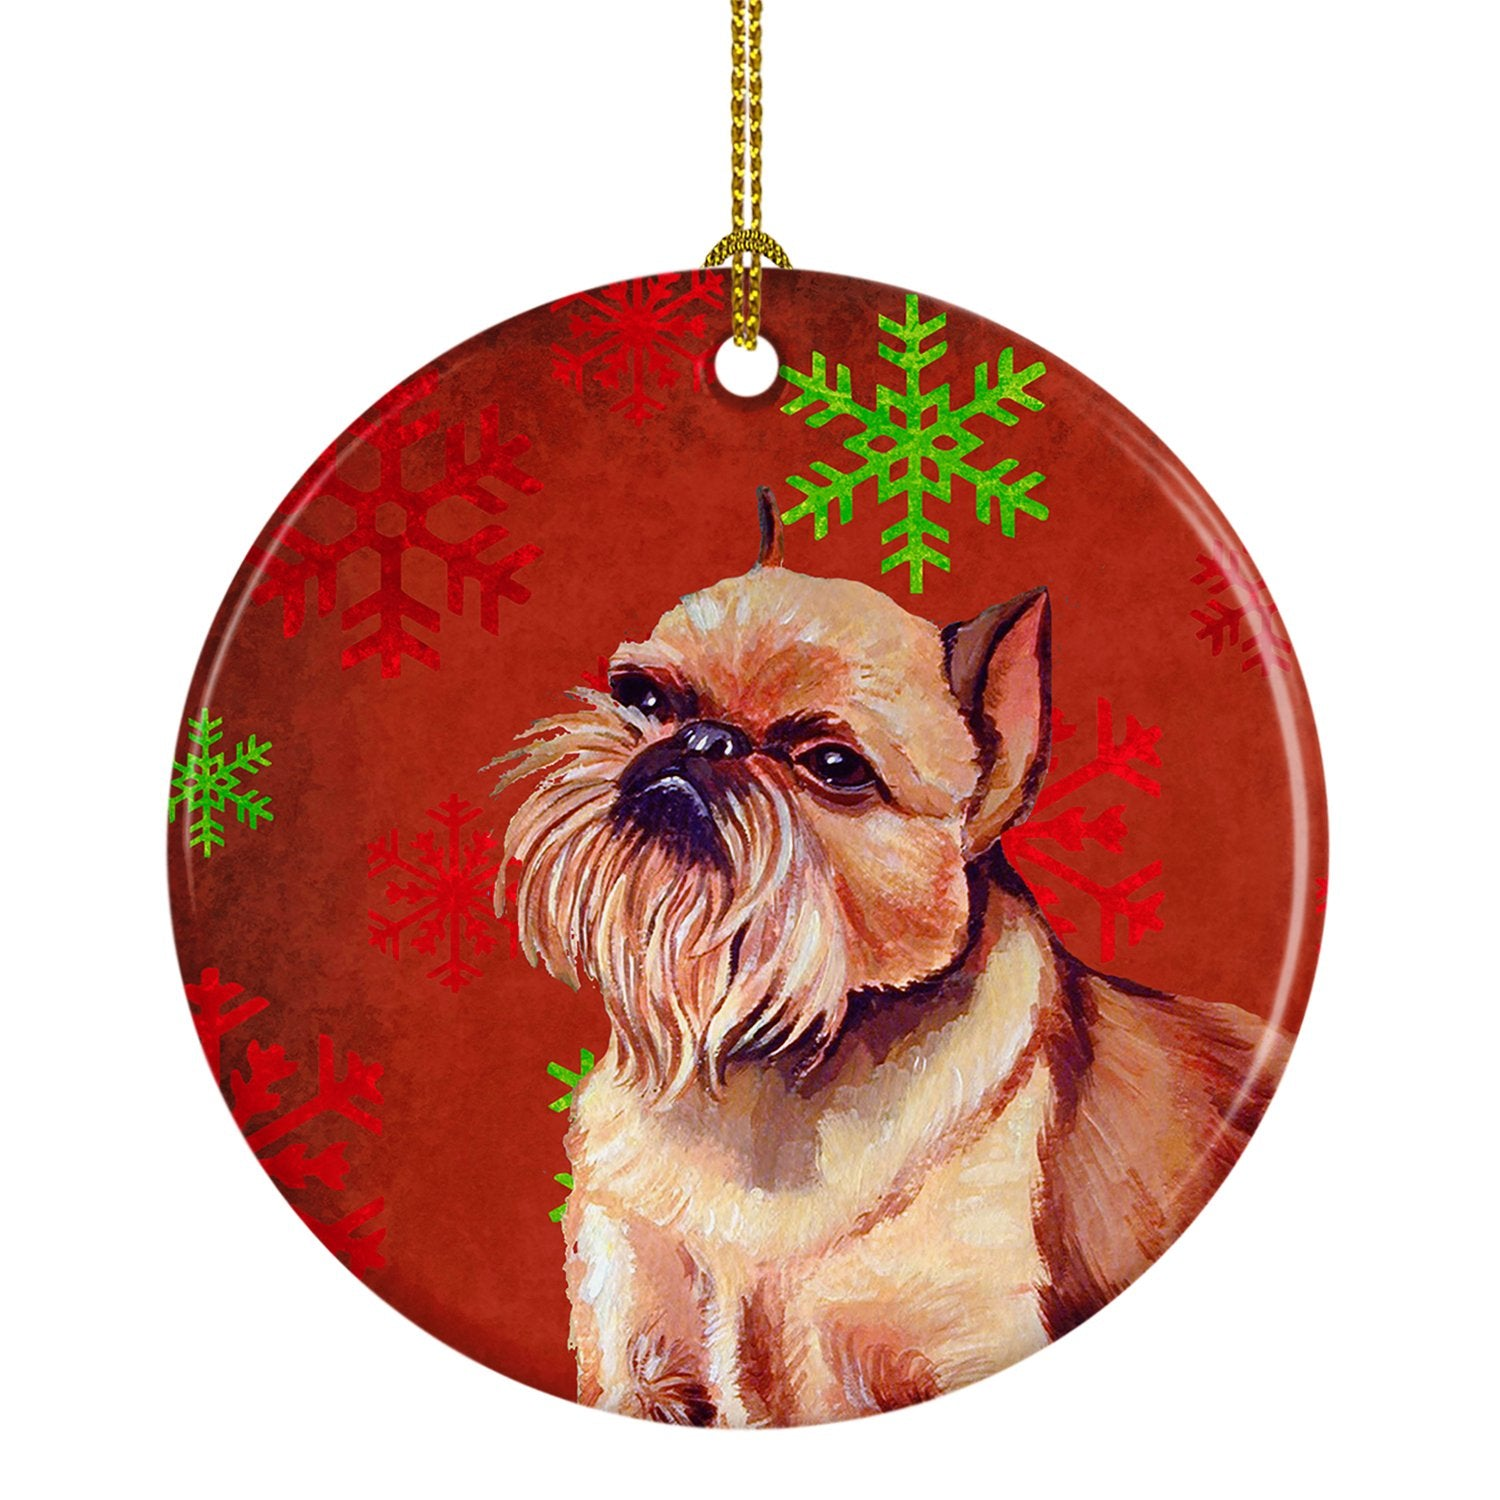 Brussels Griffon Red Snowflake Holiday Christmas Ceramic Ornament LH9314 by Caroline's Treasures